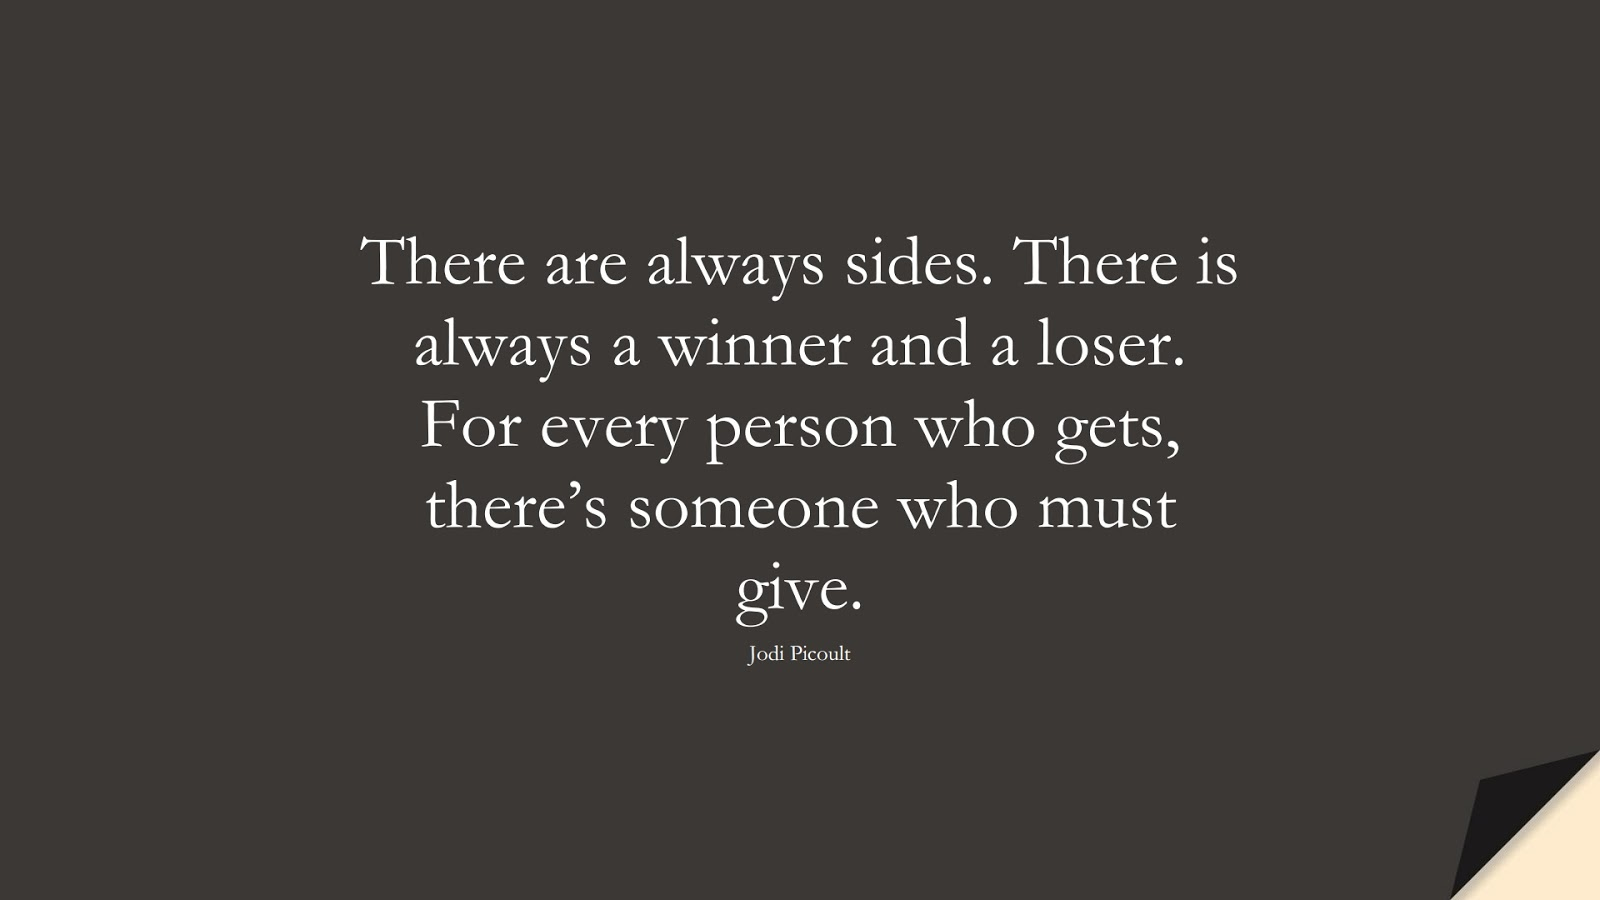 There are always sides. There is always a winner and a loser. For every person who gets, there's someone who must give. (Jodi Picoult);  #LoveQuotes